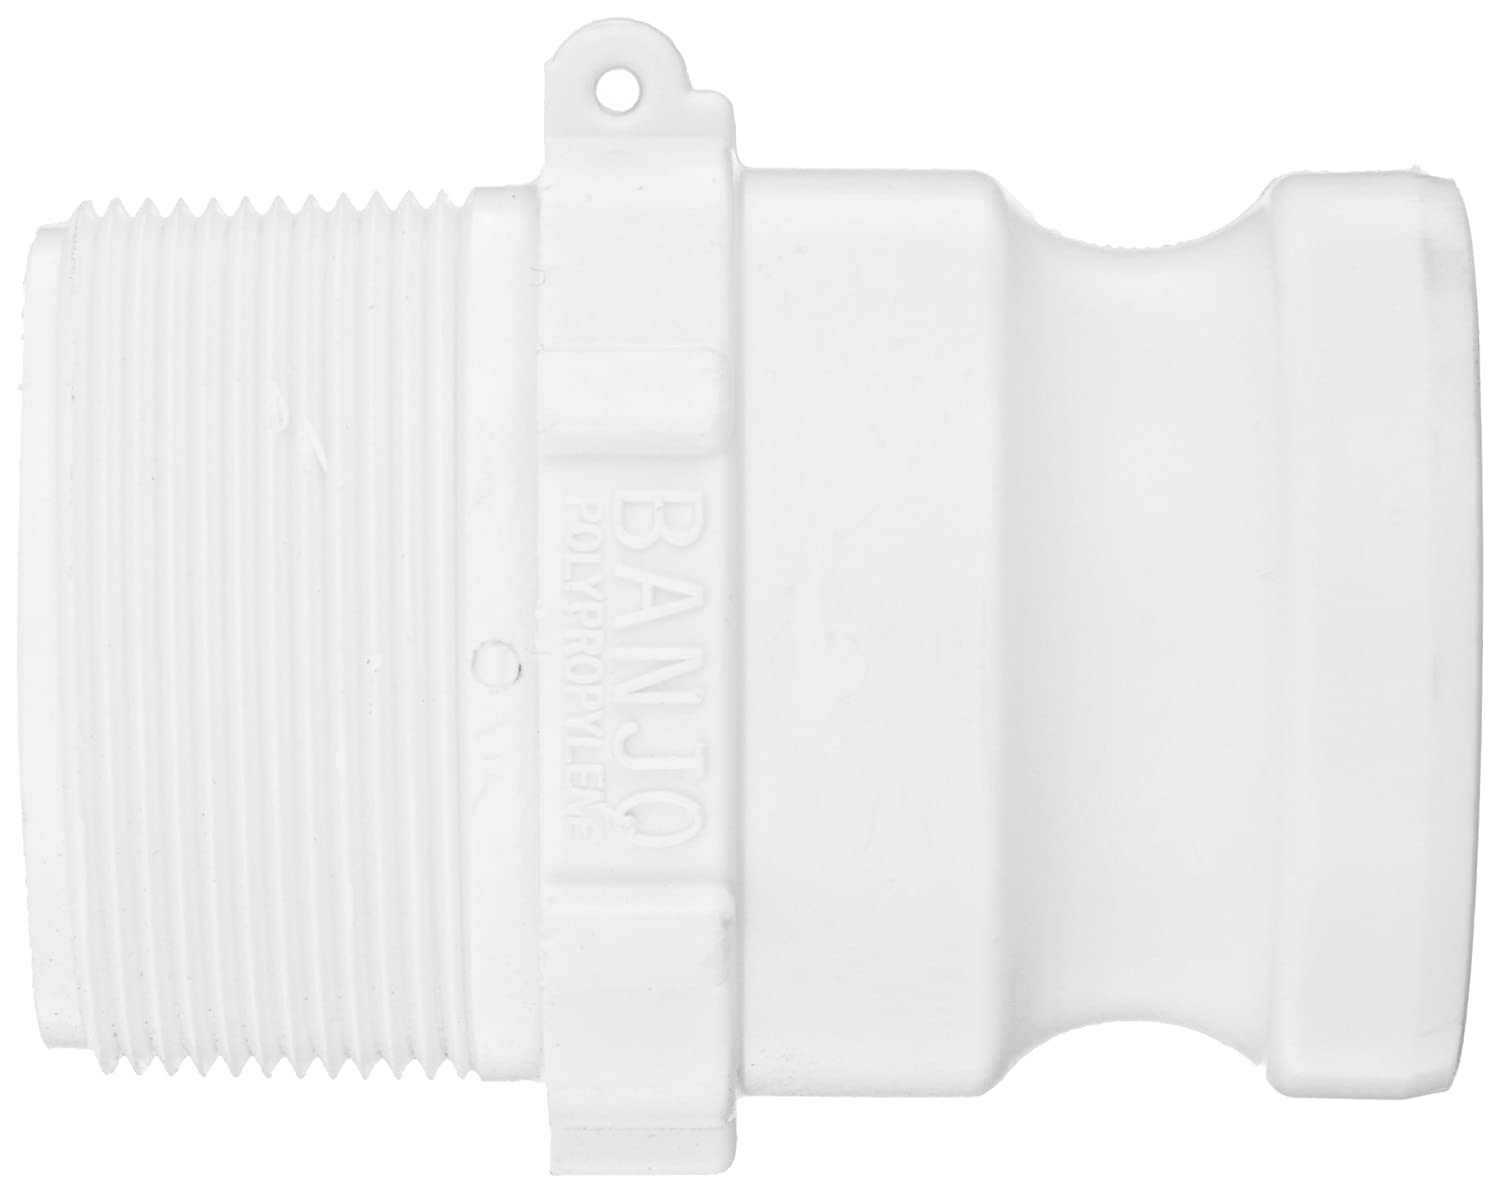 4 Length x 2-1//2 Width x 2-1//2 Height 2 BSP Thread for Intermediate Bulk Containers Grayling 8499010 Quick Connect//Disconnect Adapter White